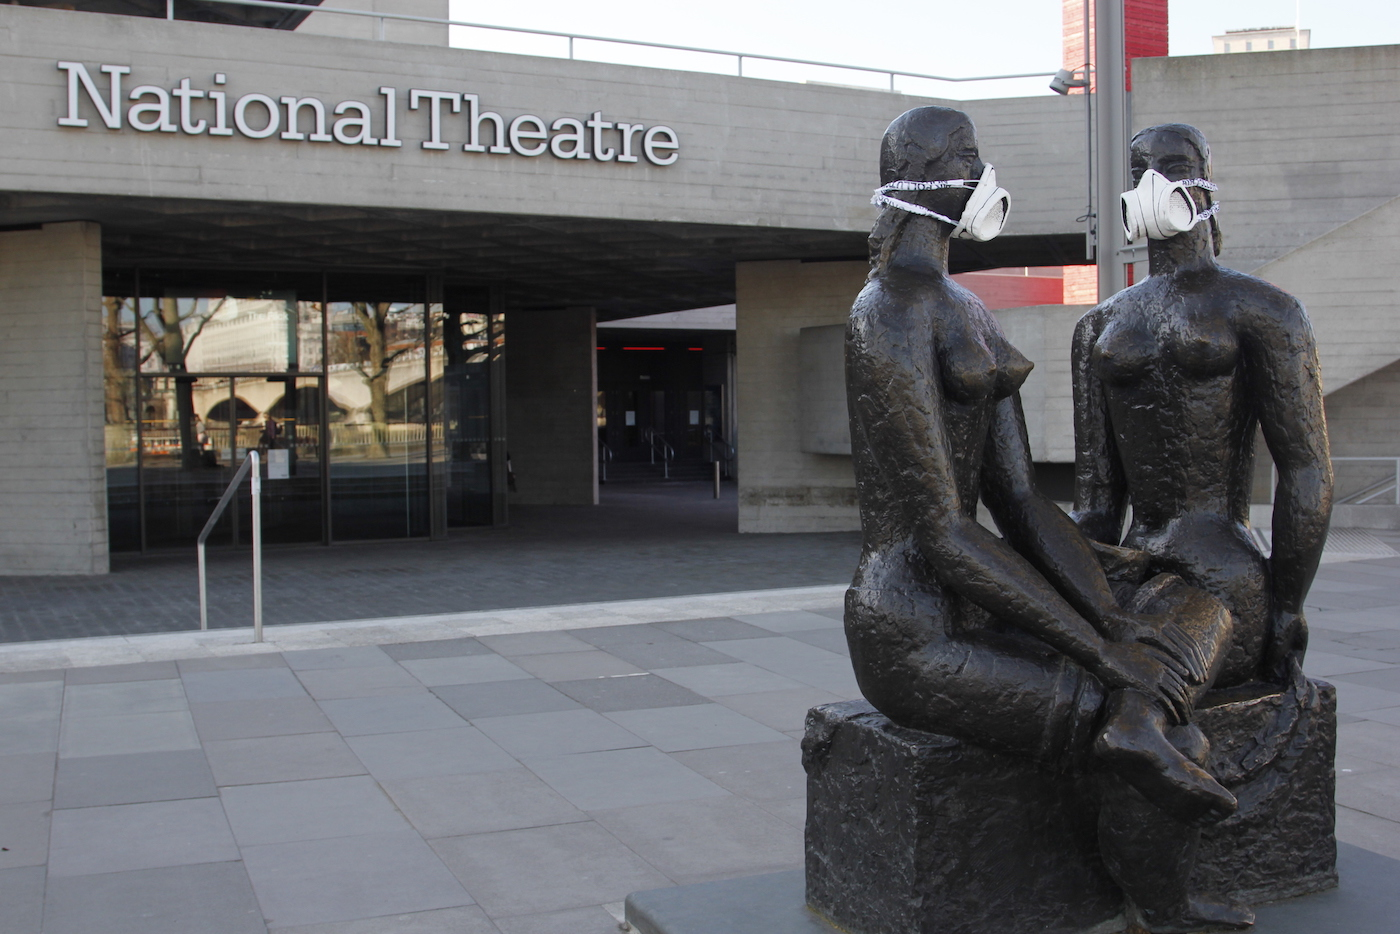 Greenpeace activists fit the London Pride statue, outside The National Theatre, with an emergency face mask